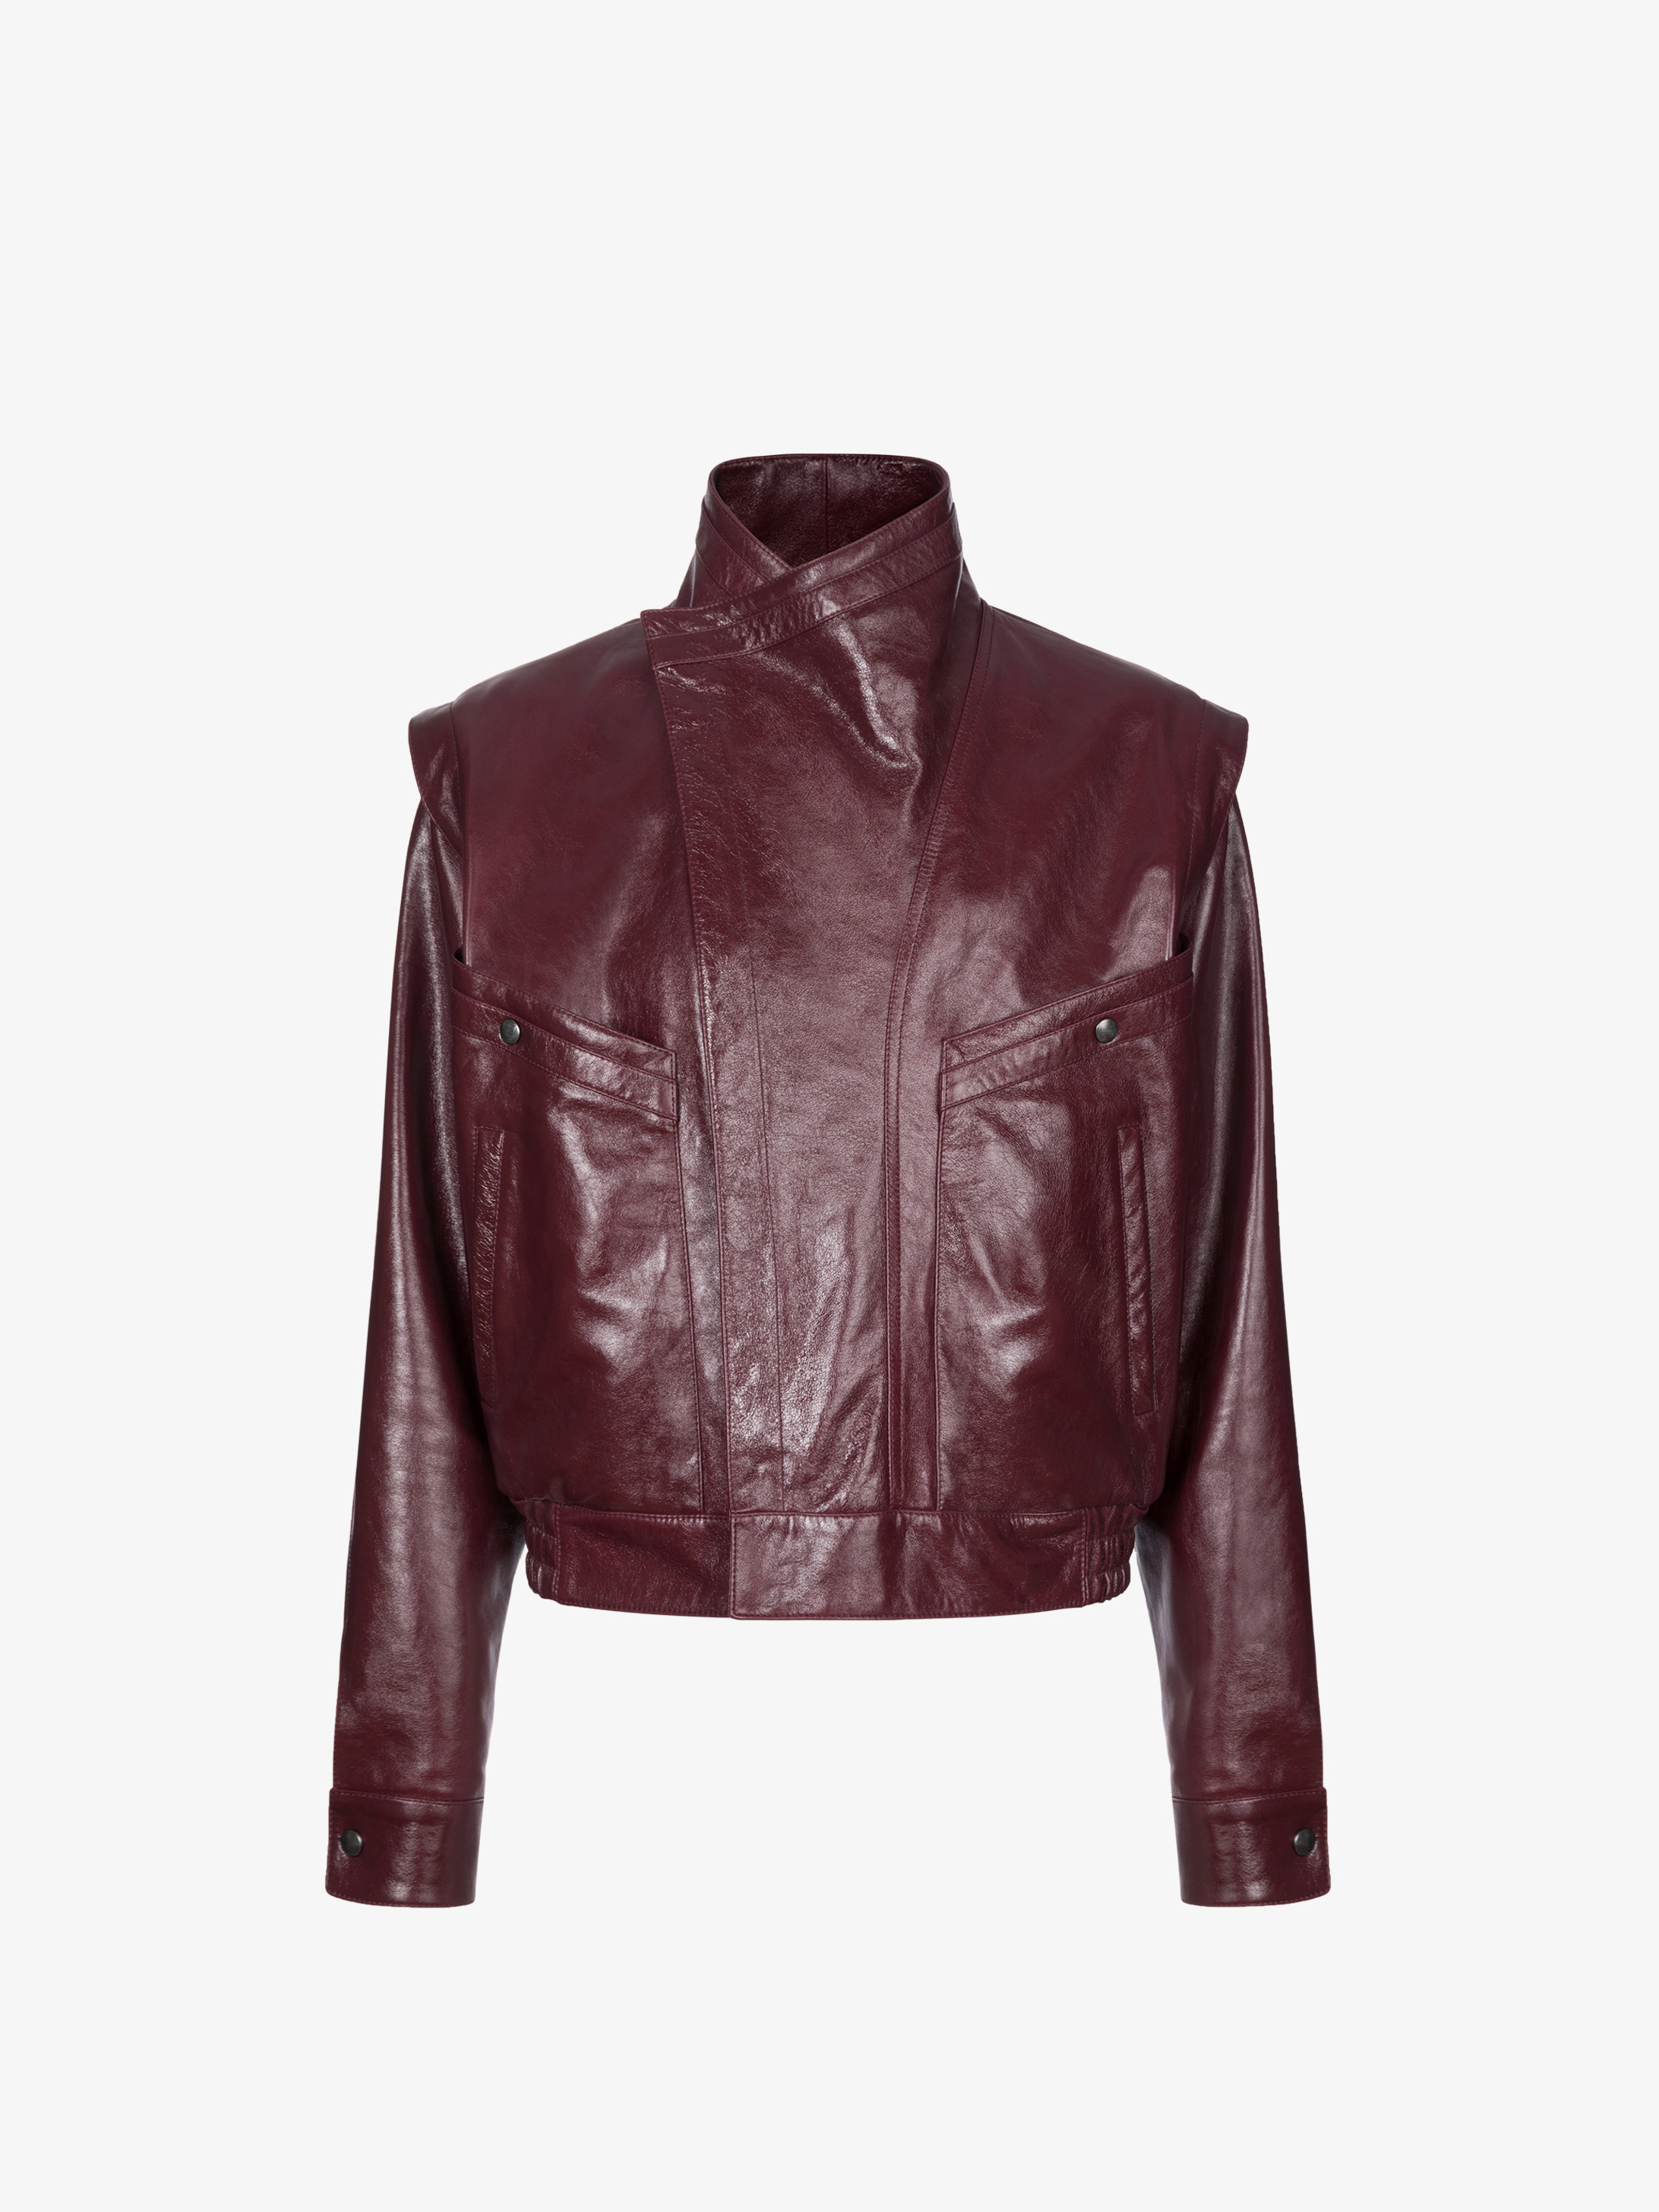 Graphic Vintage leather casual jacket